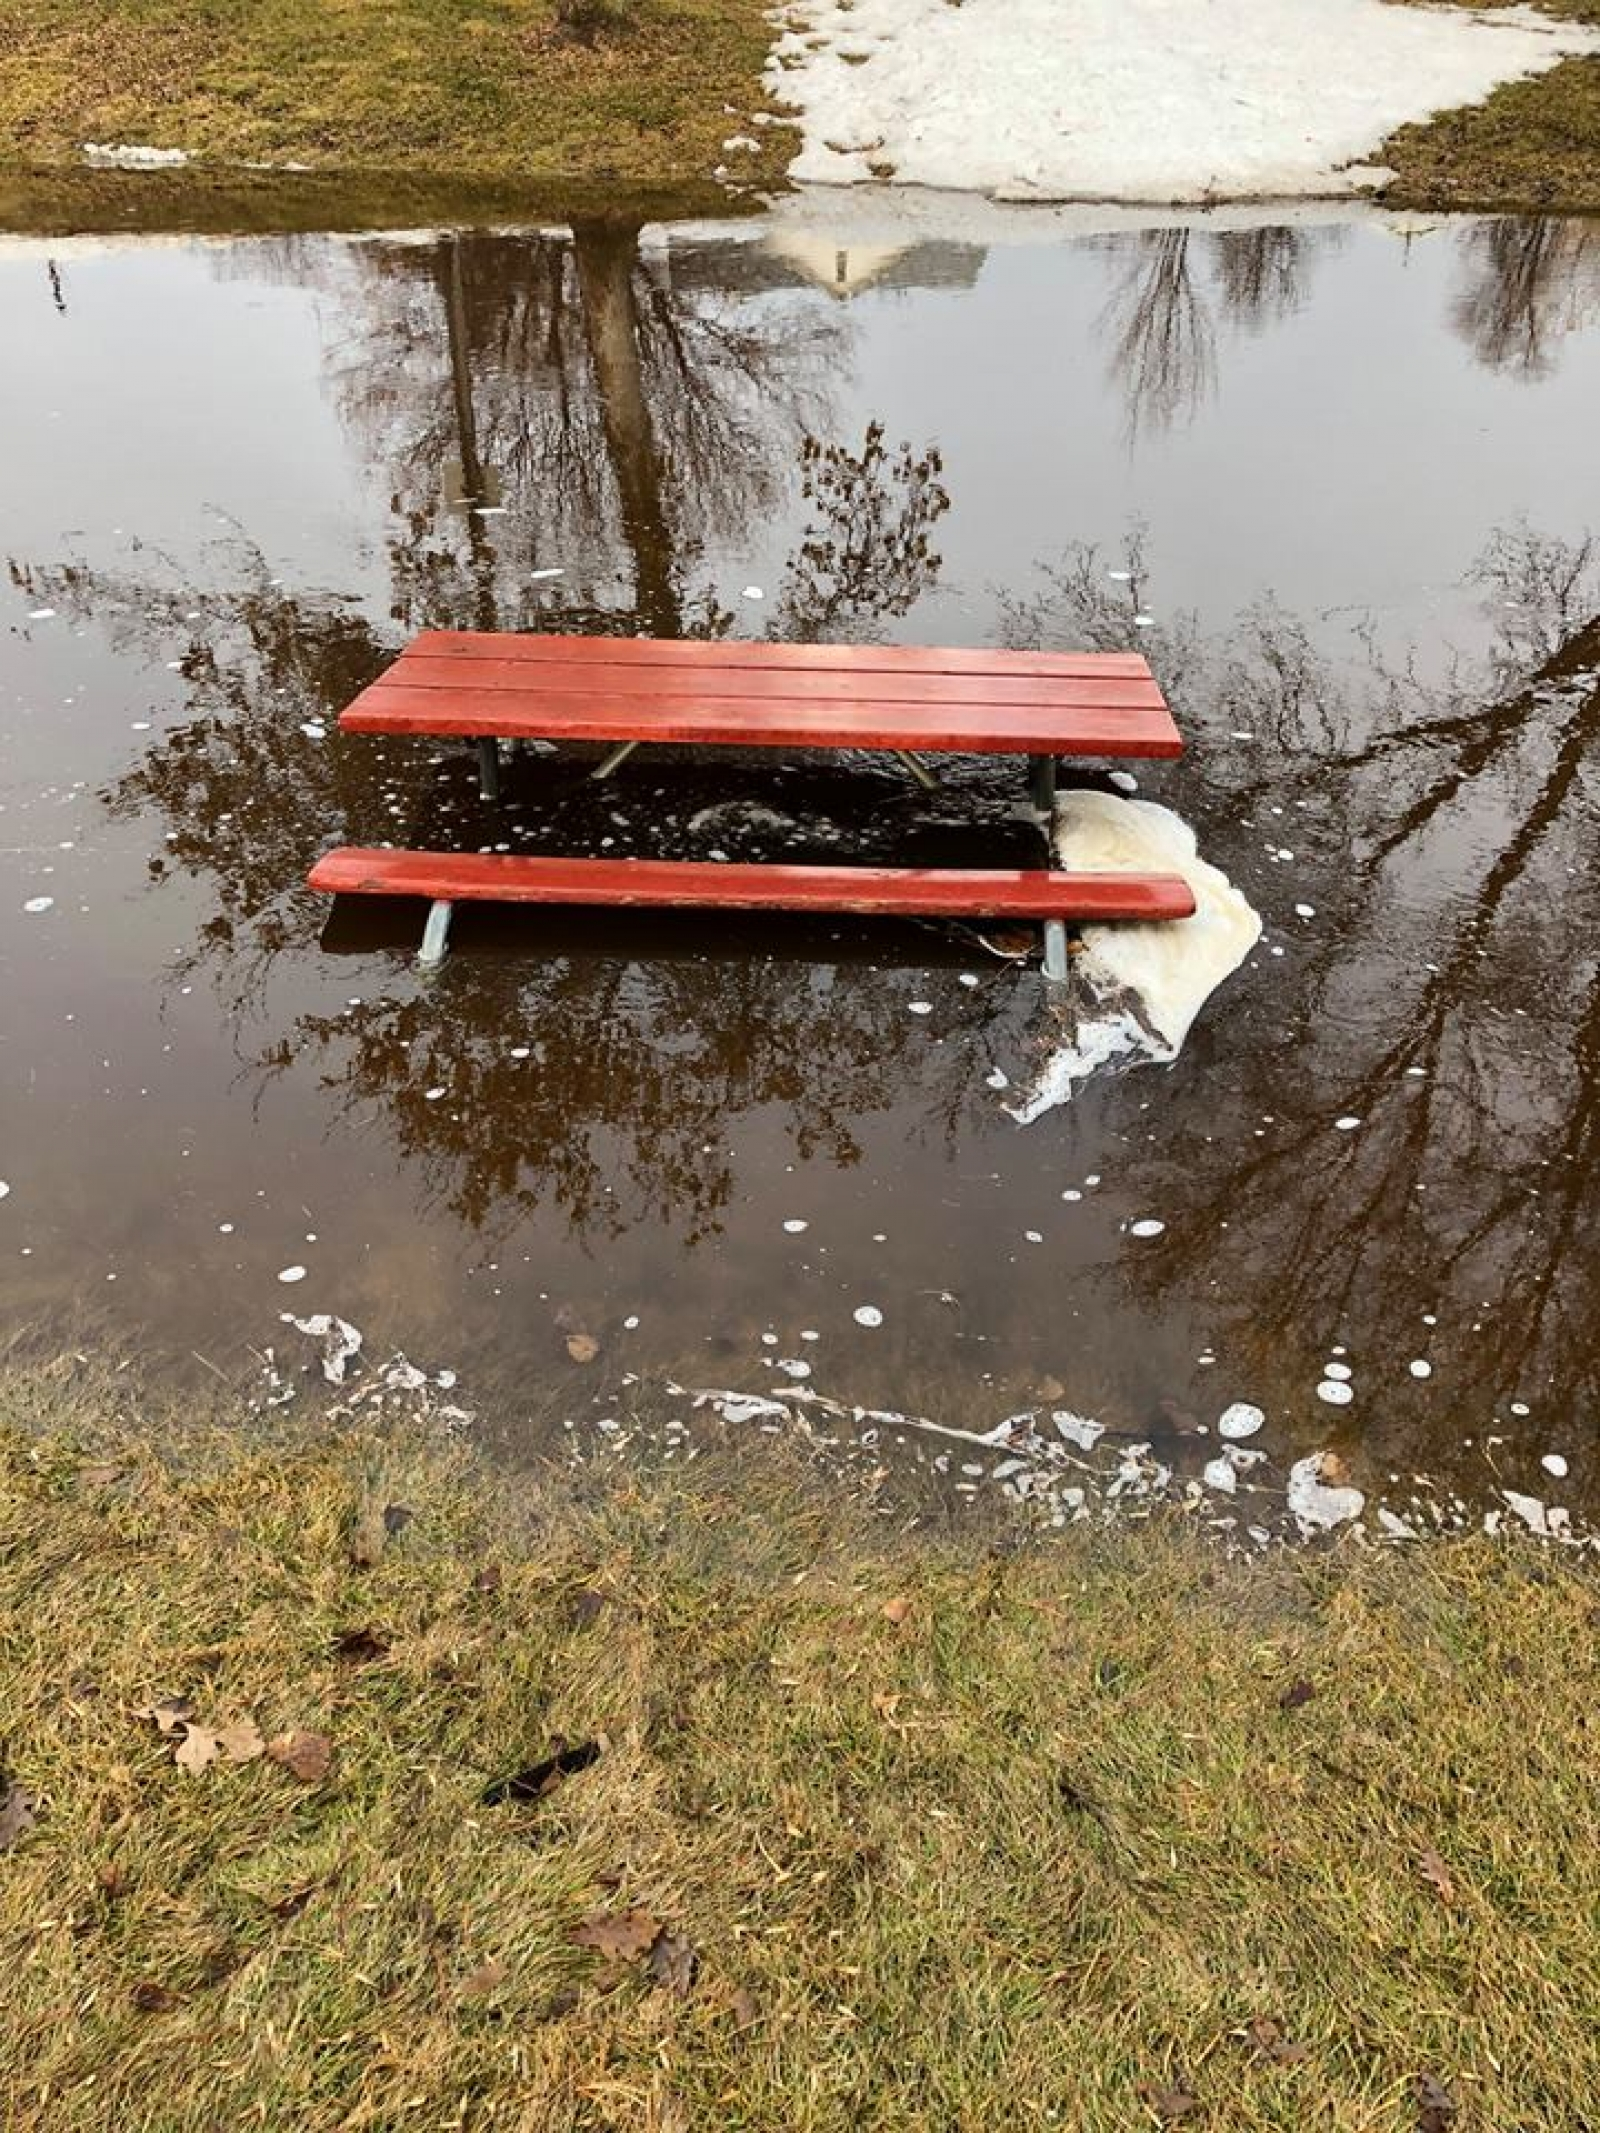 Picnic tables were pushed into the Antelope Creek in the Gordon City Park on two separate occasions over the weekend.